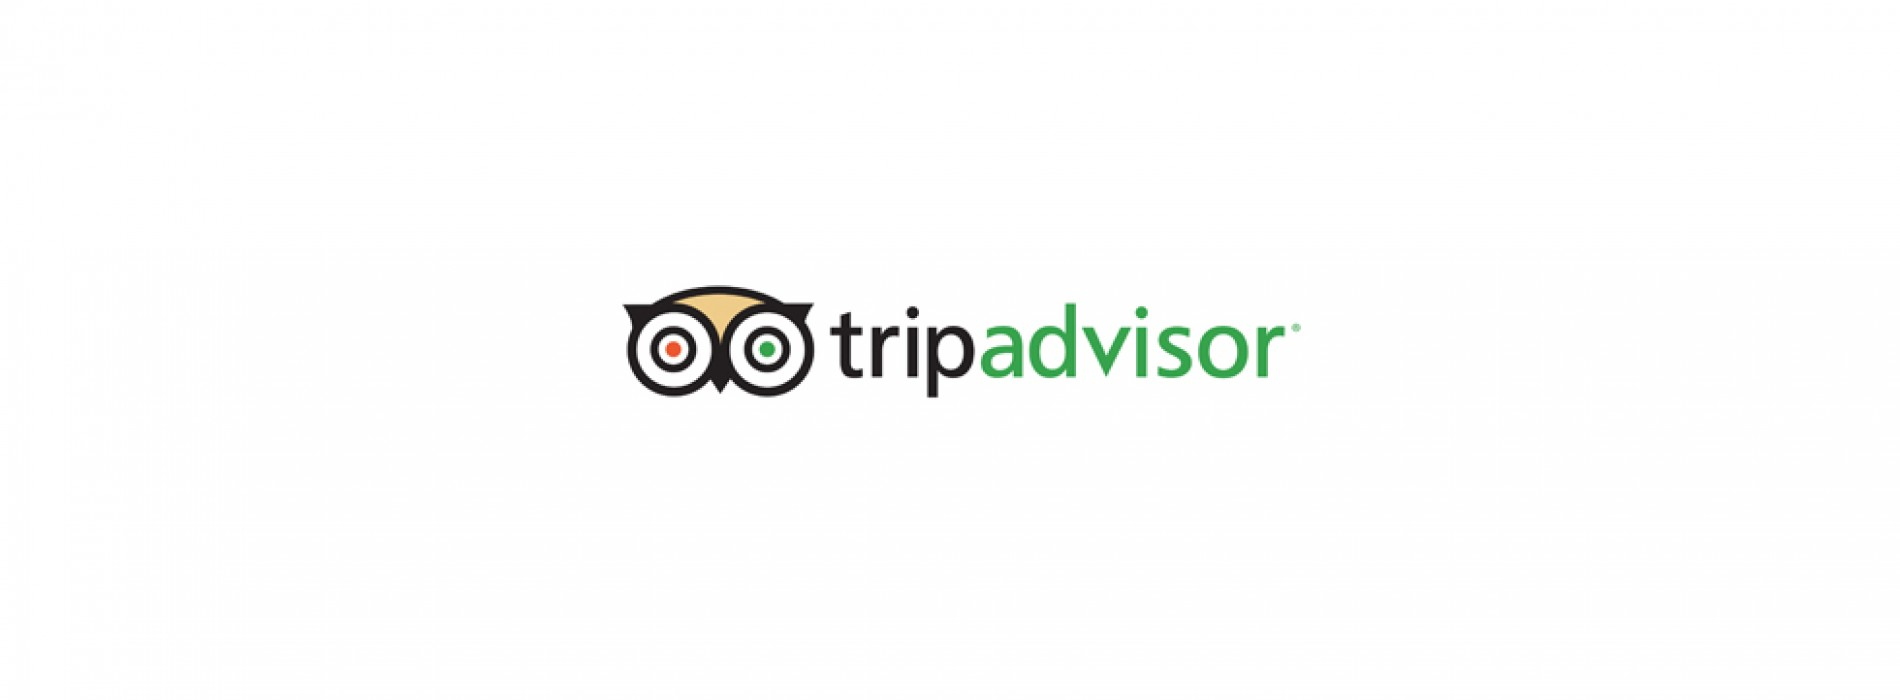 TripAdvisor hotel pricing report reveals best time for indians to go to popular travel destinations worldwide